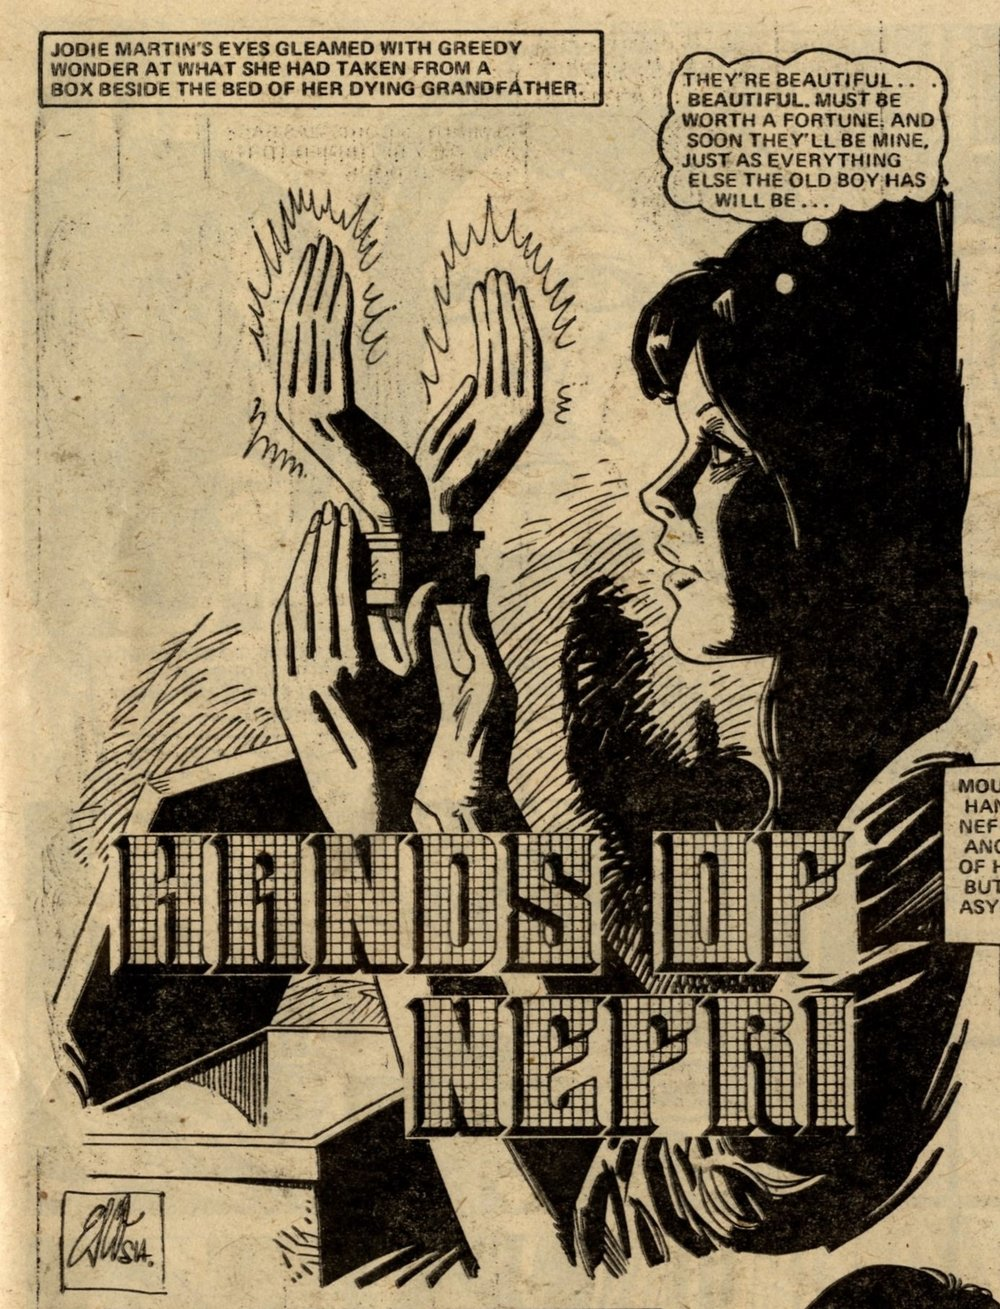 The Hands of Nefri: Ramon Metaute (artist)